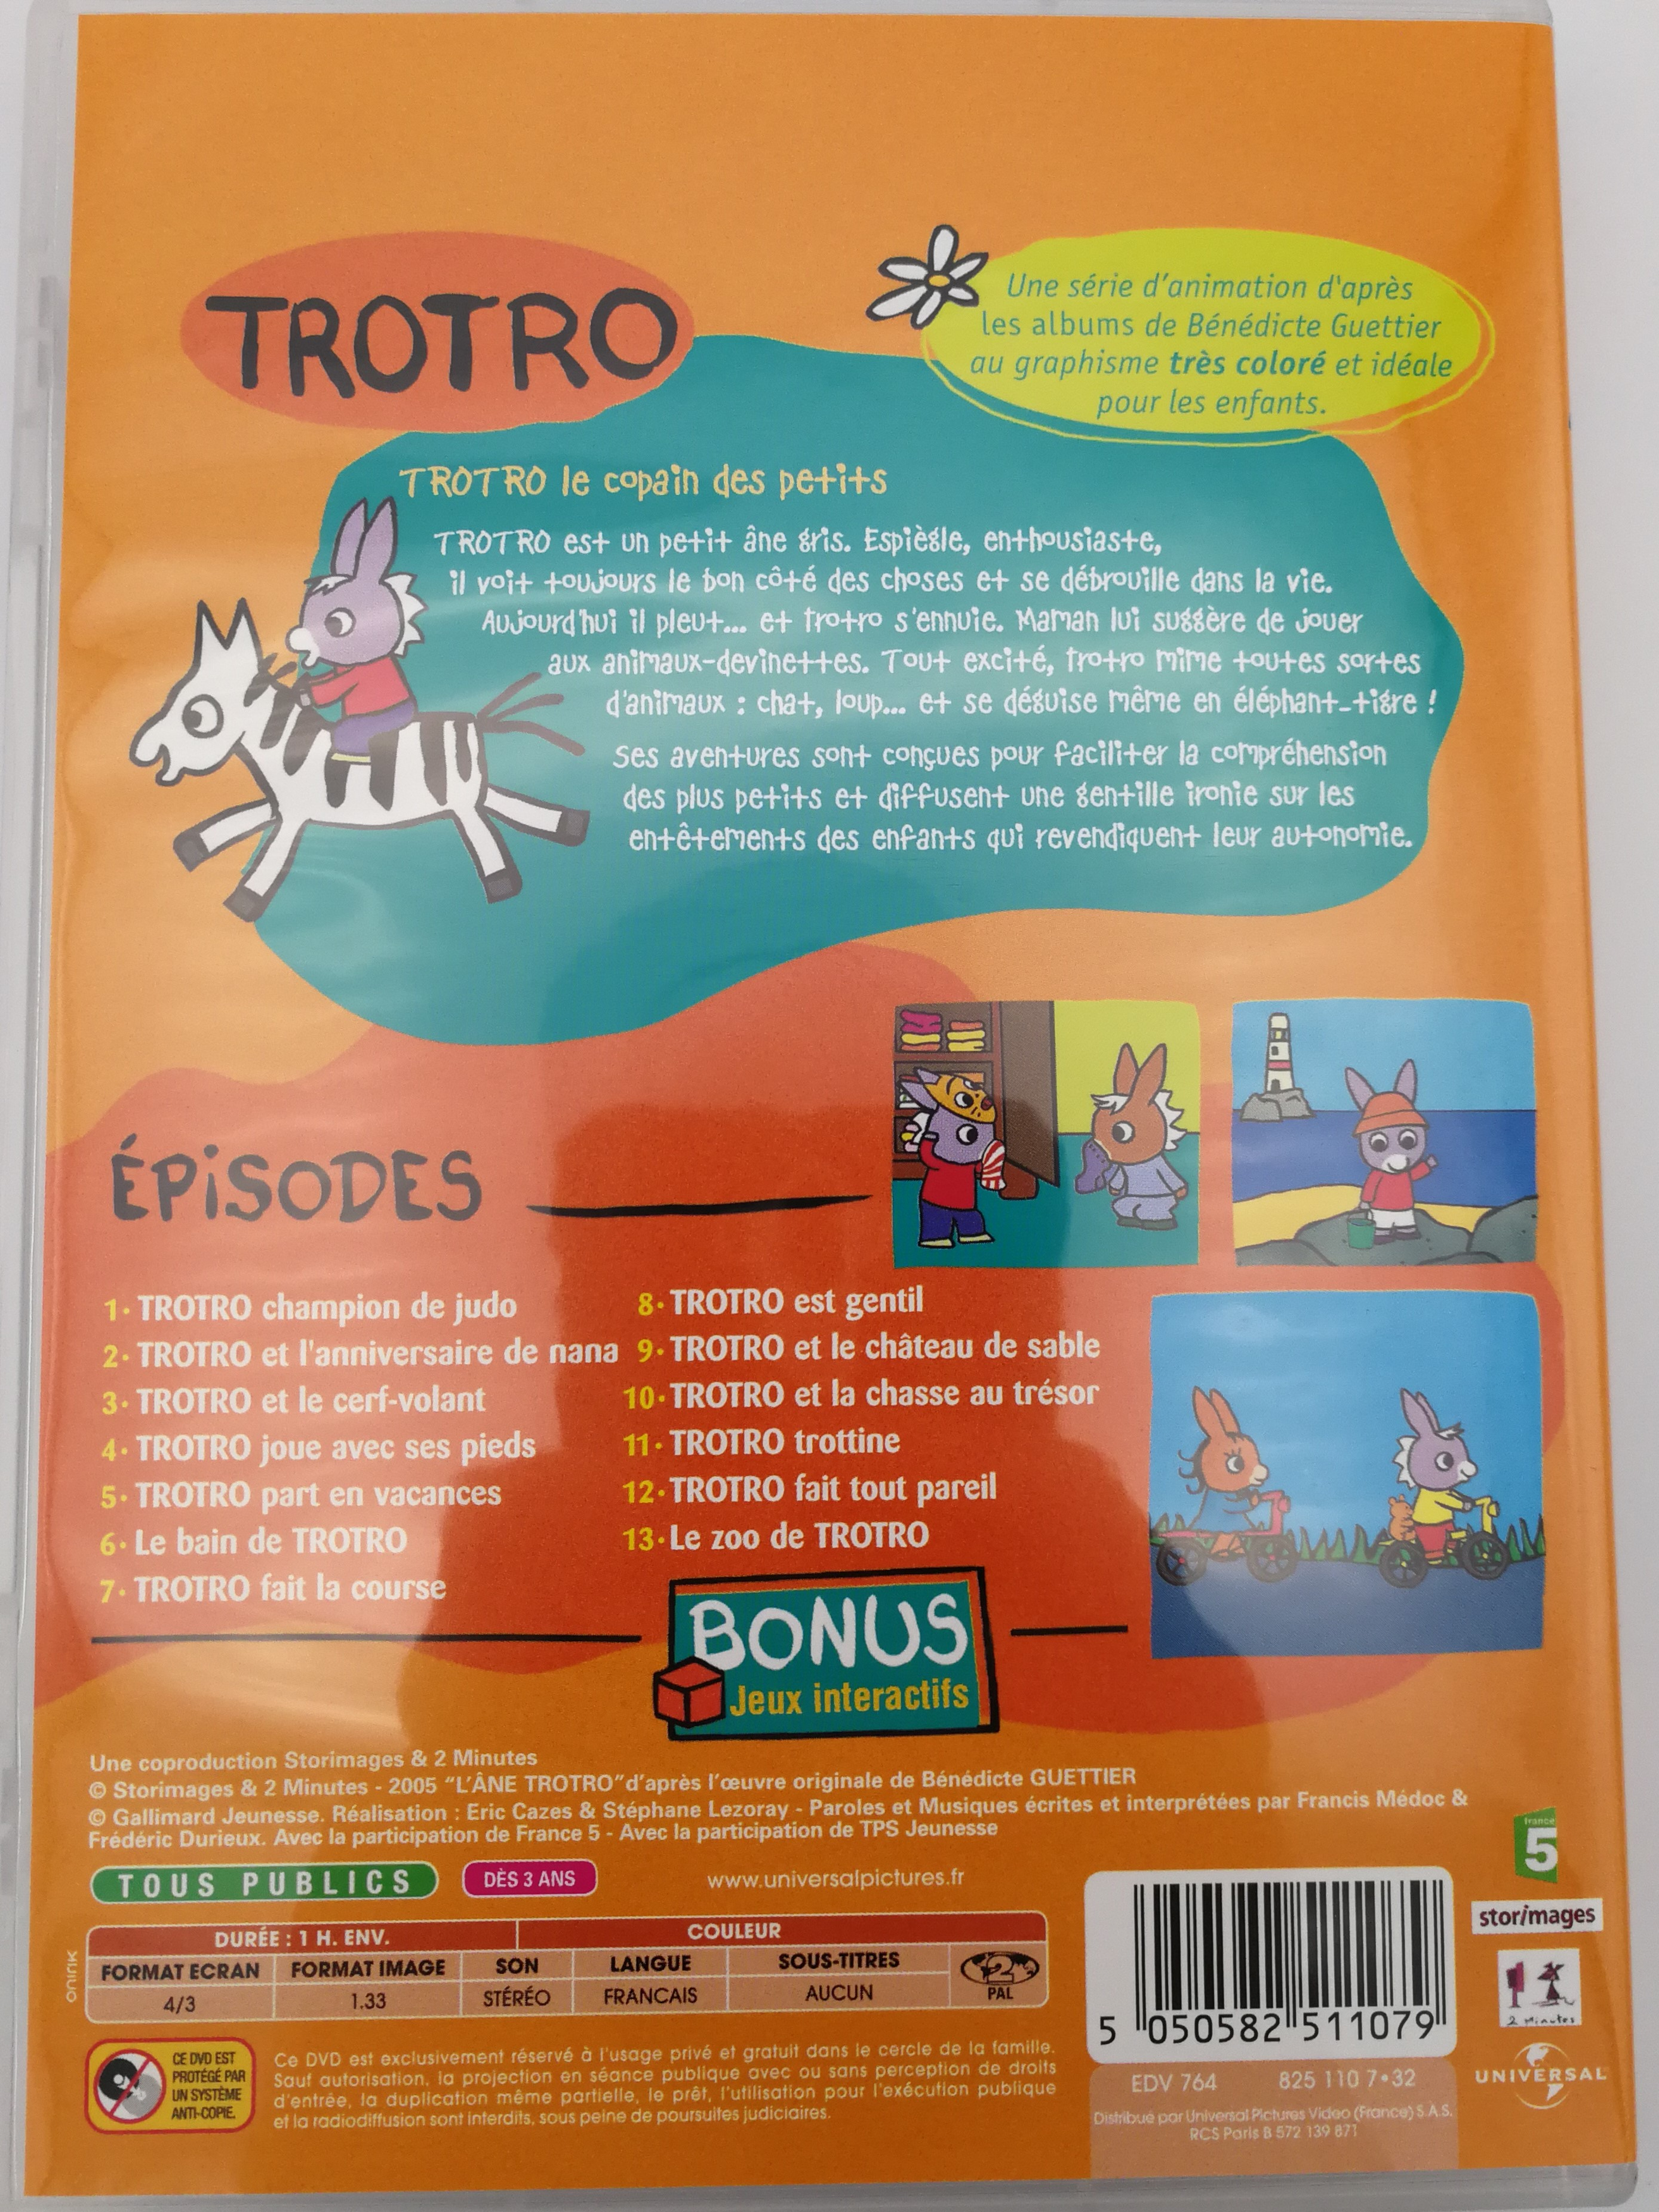 Trotro - Fait Son Zoo Dvd 2004 / Bonus: Interacive Games intérieur Trotro French Cartoon